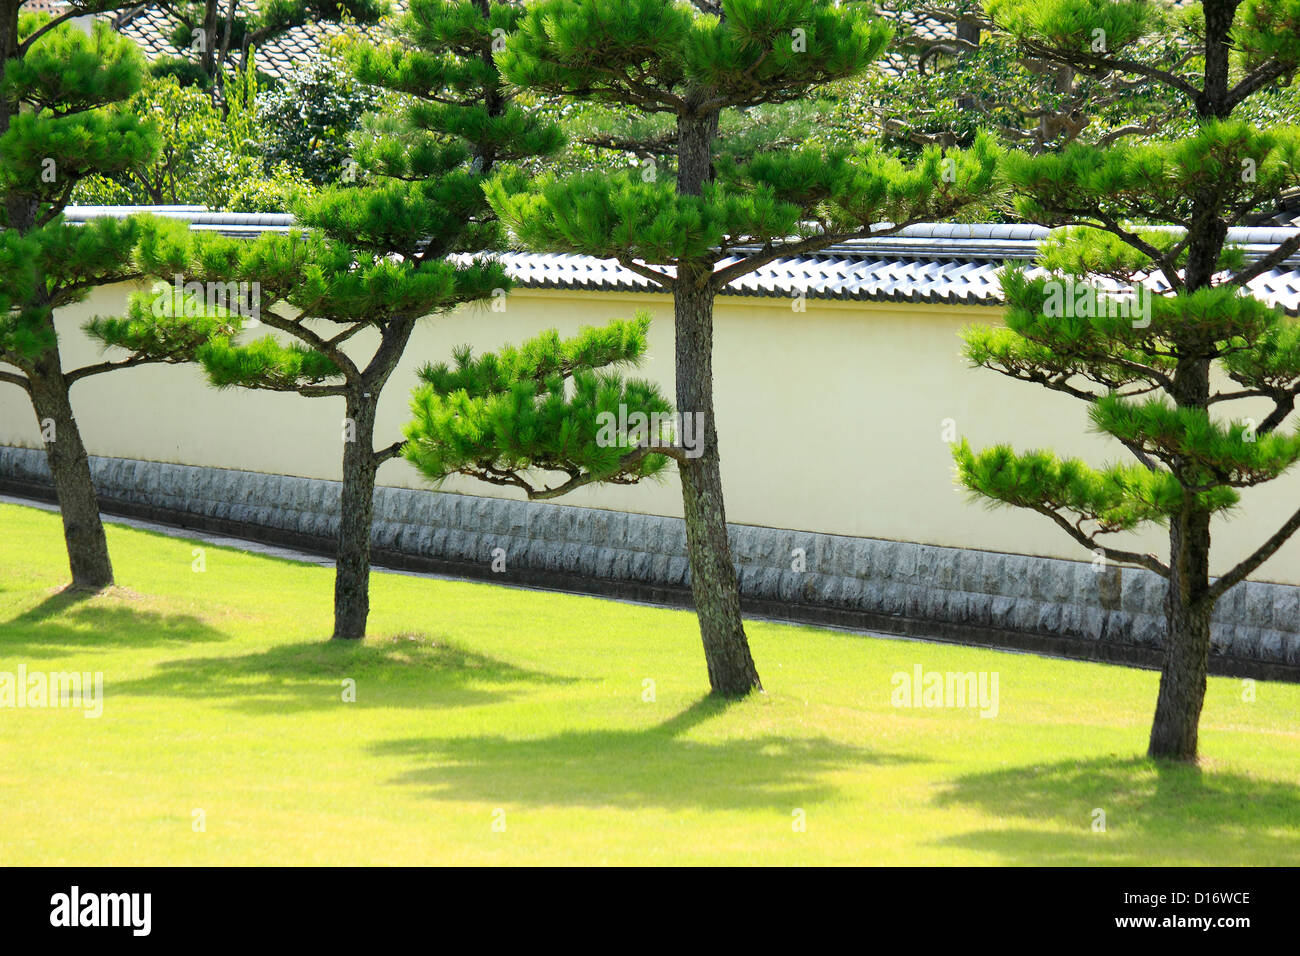 Garden With Pine Trees And Japanese Traditional Roofed Stone Wall, Nara  Prefecture